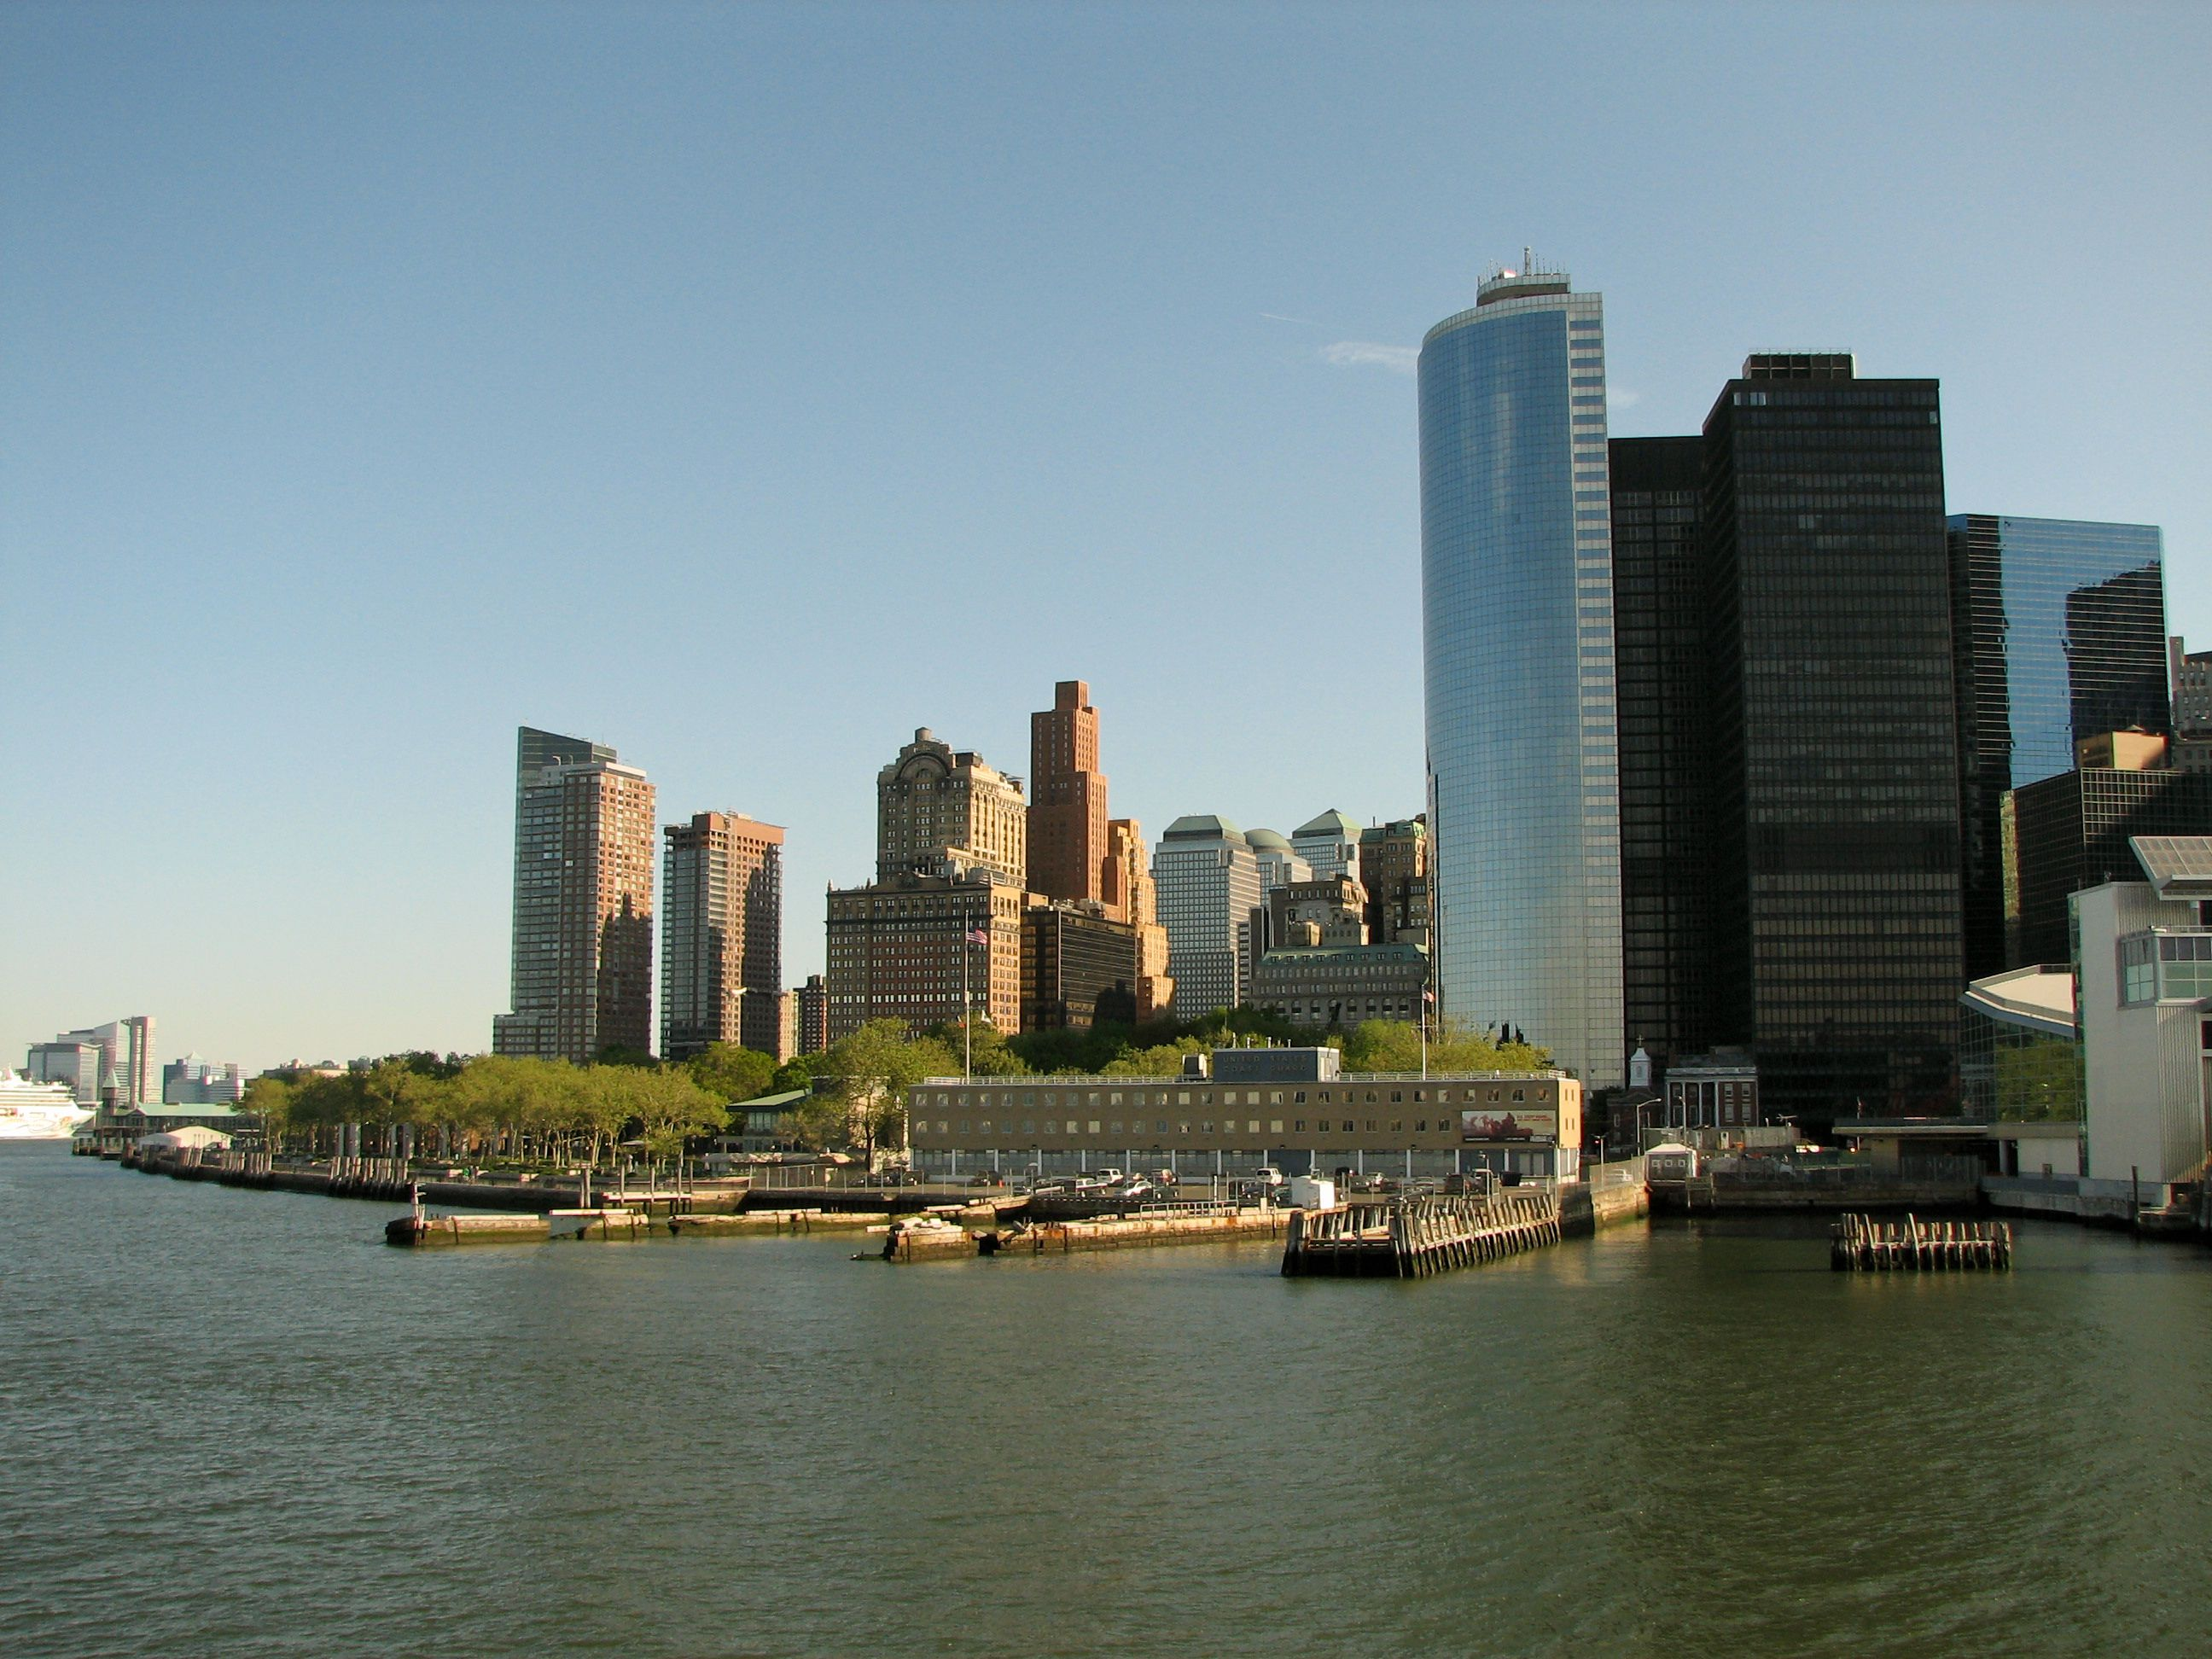 New_York_City_South_Ferry_Terminal_and_Battery_Park.jpg (2592×1944)